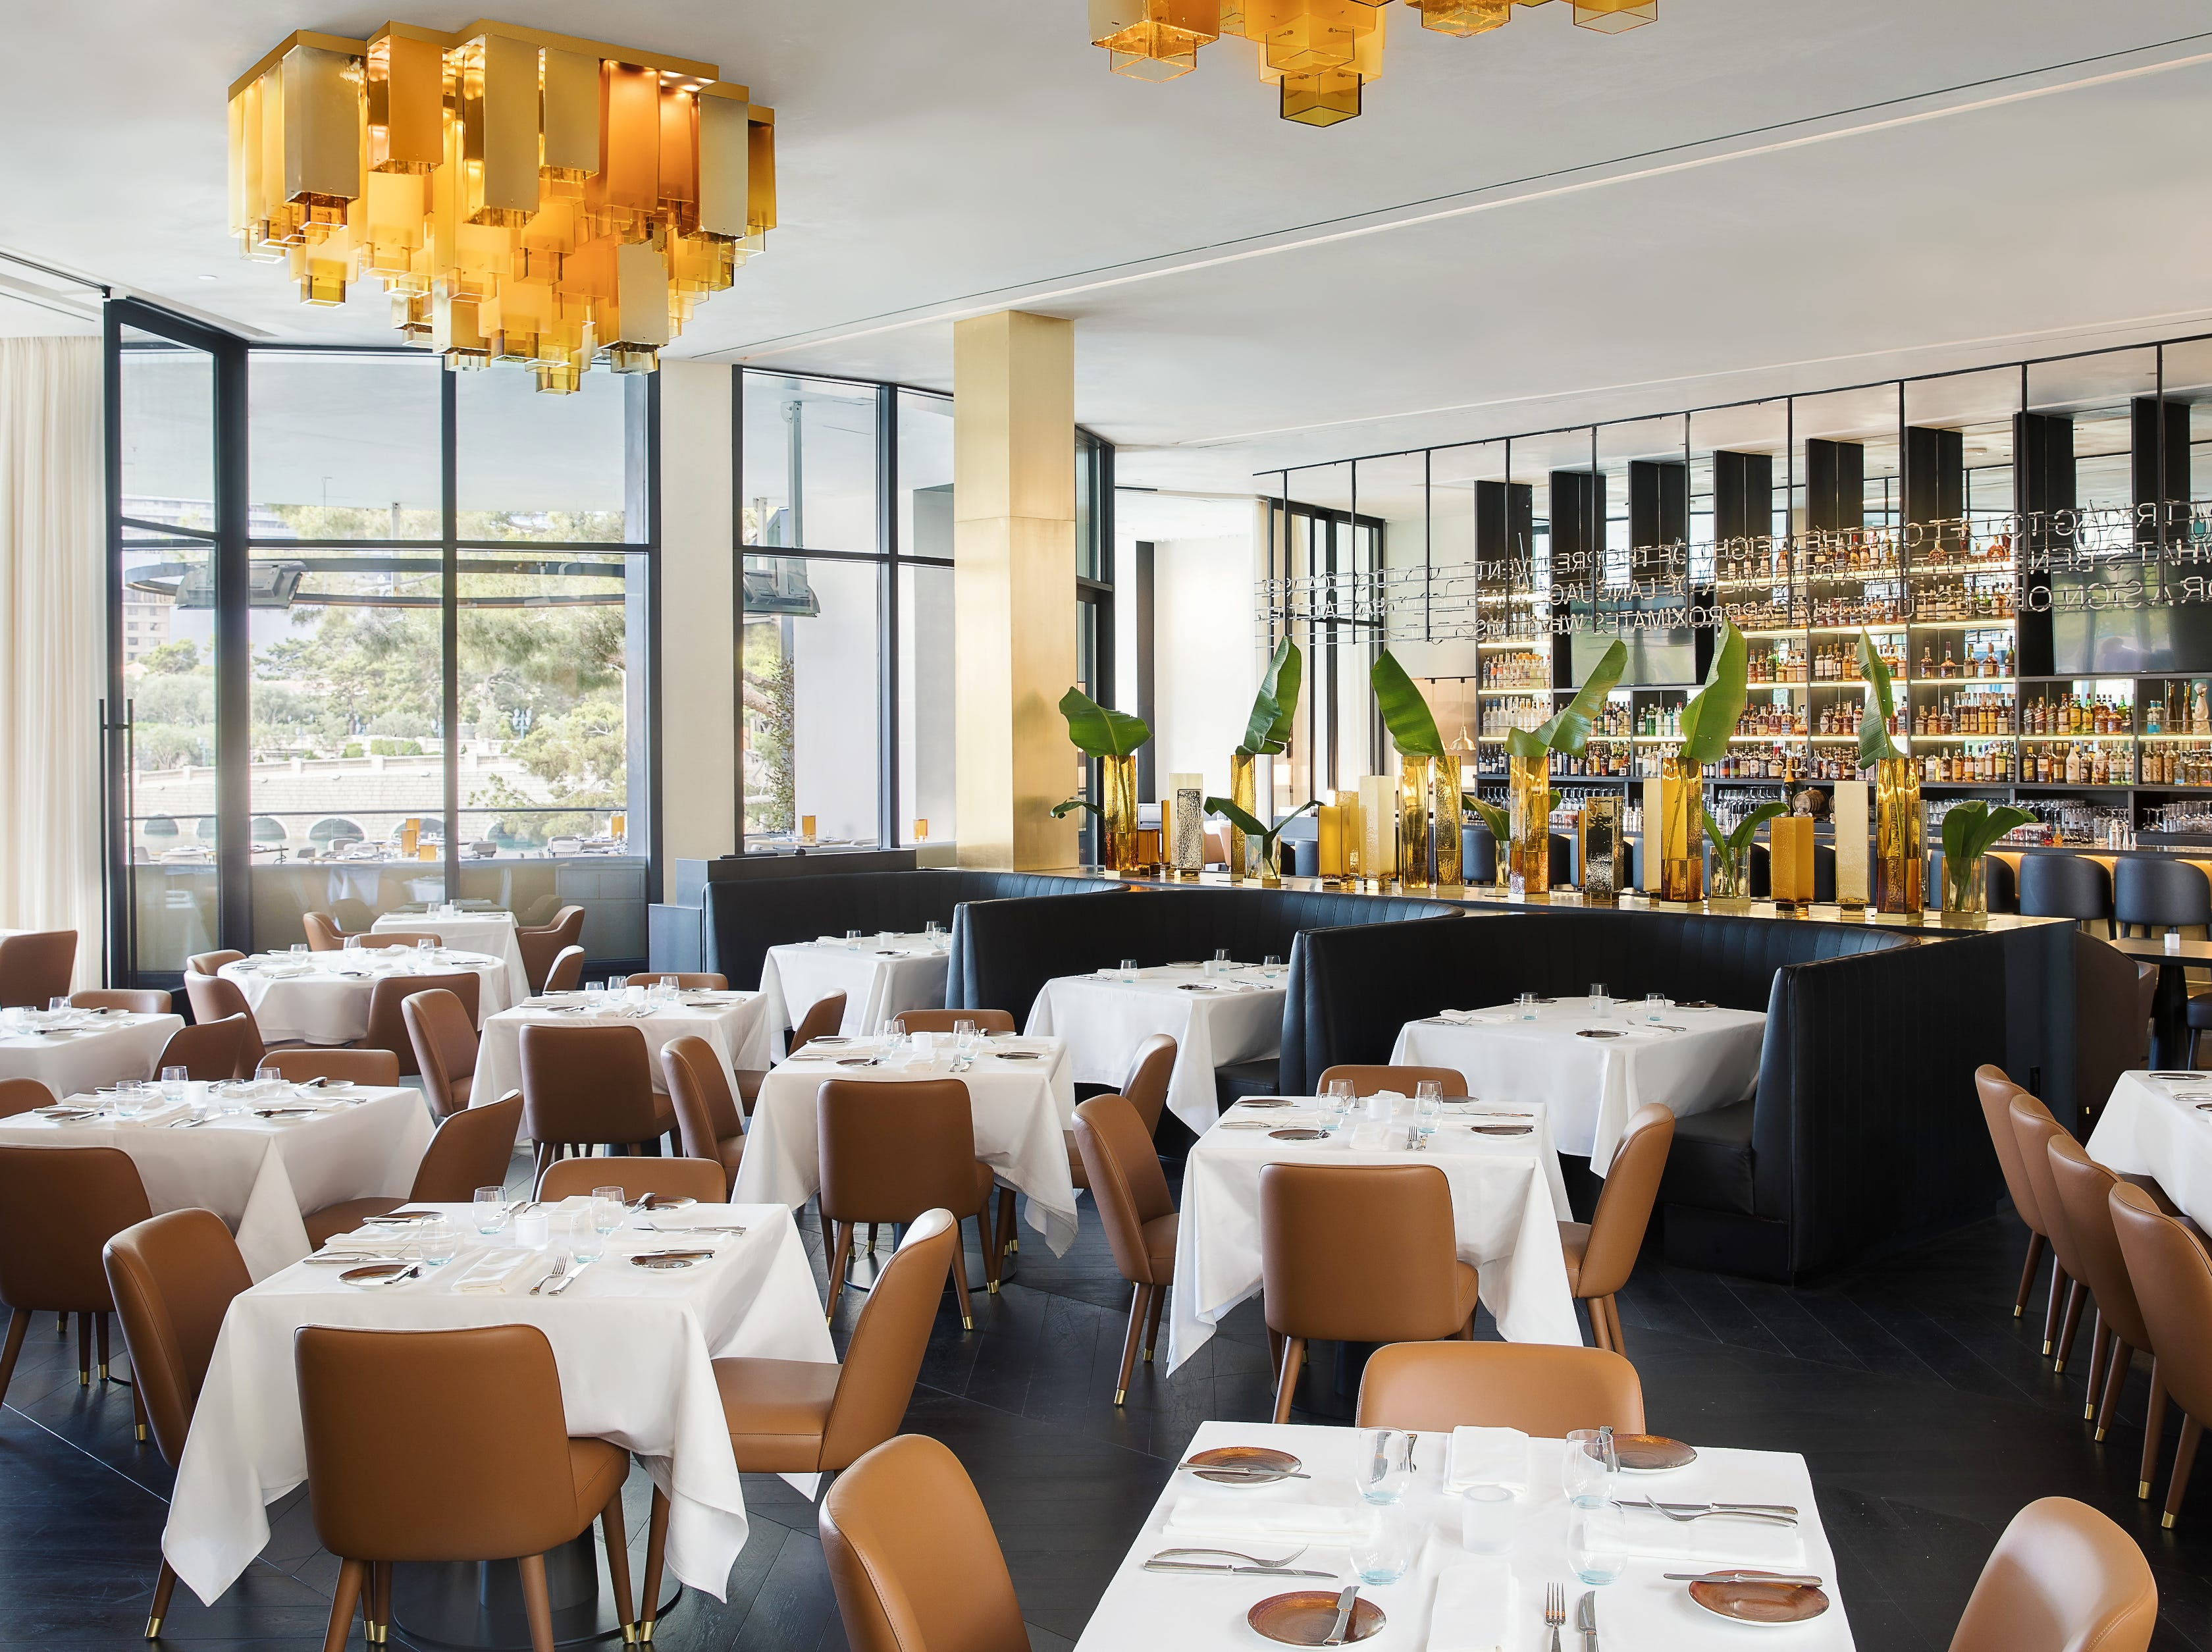 SPAGO in Bellagio Resort & Casino. Twenty five years after the original Spago sparked Las Vegas' culinary transformation, legendary chef Wolfgang Puck debuts a new incarnation of the restaurant.